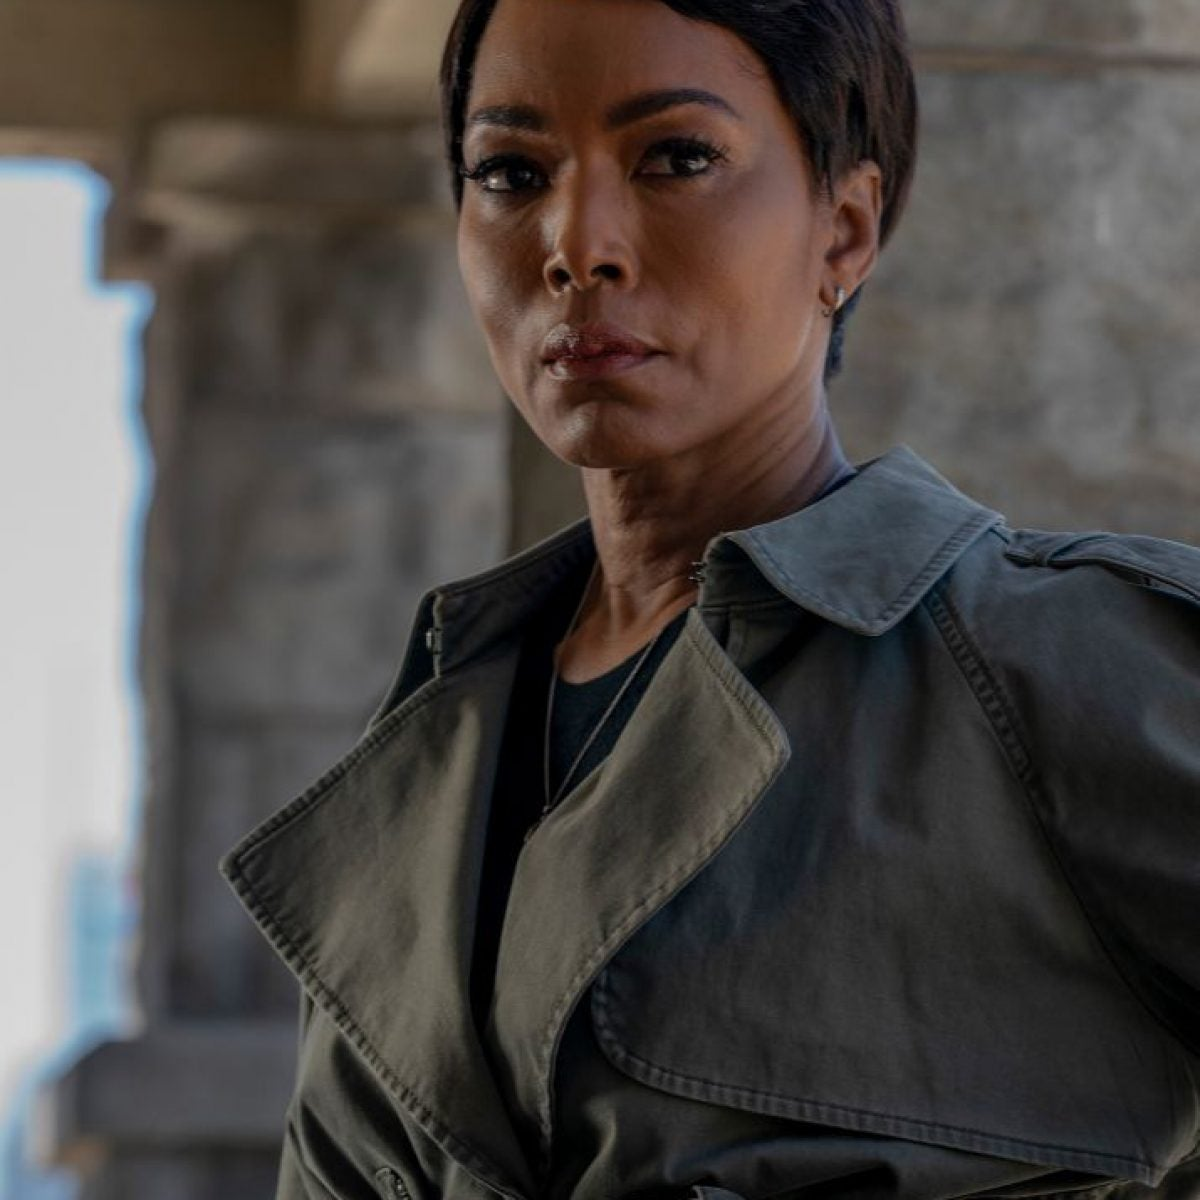 Angela Bassett Talks Filming '9-1-1' During COVID-19 And Why She'd Take The Vaccine